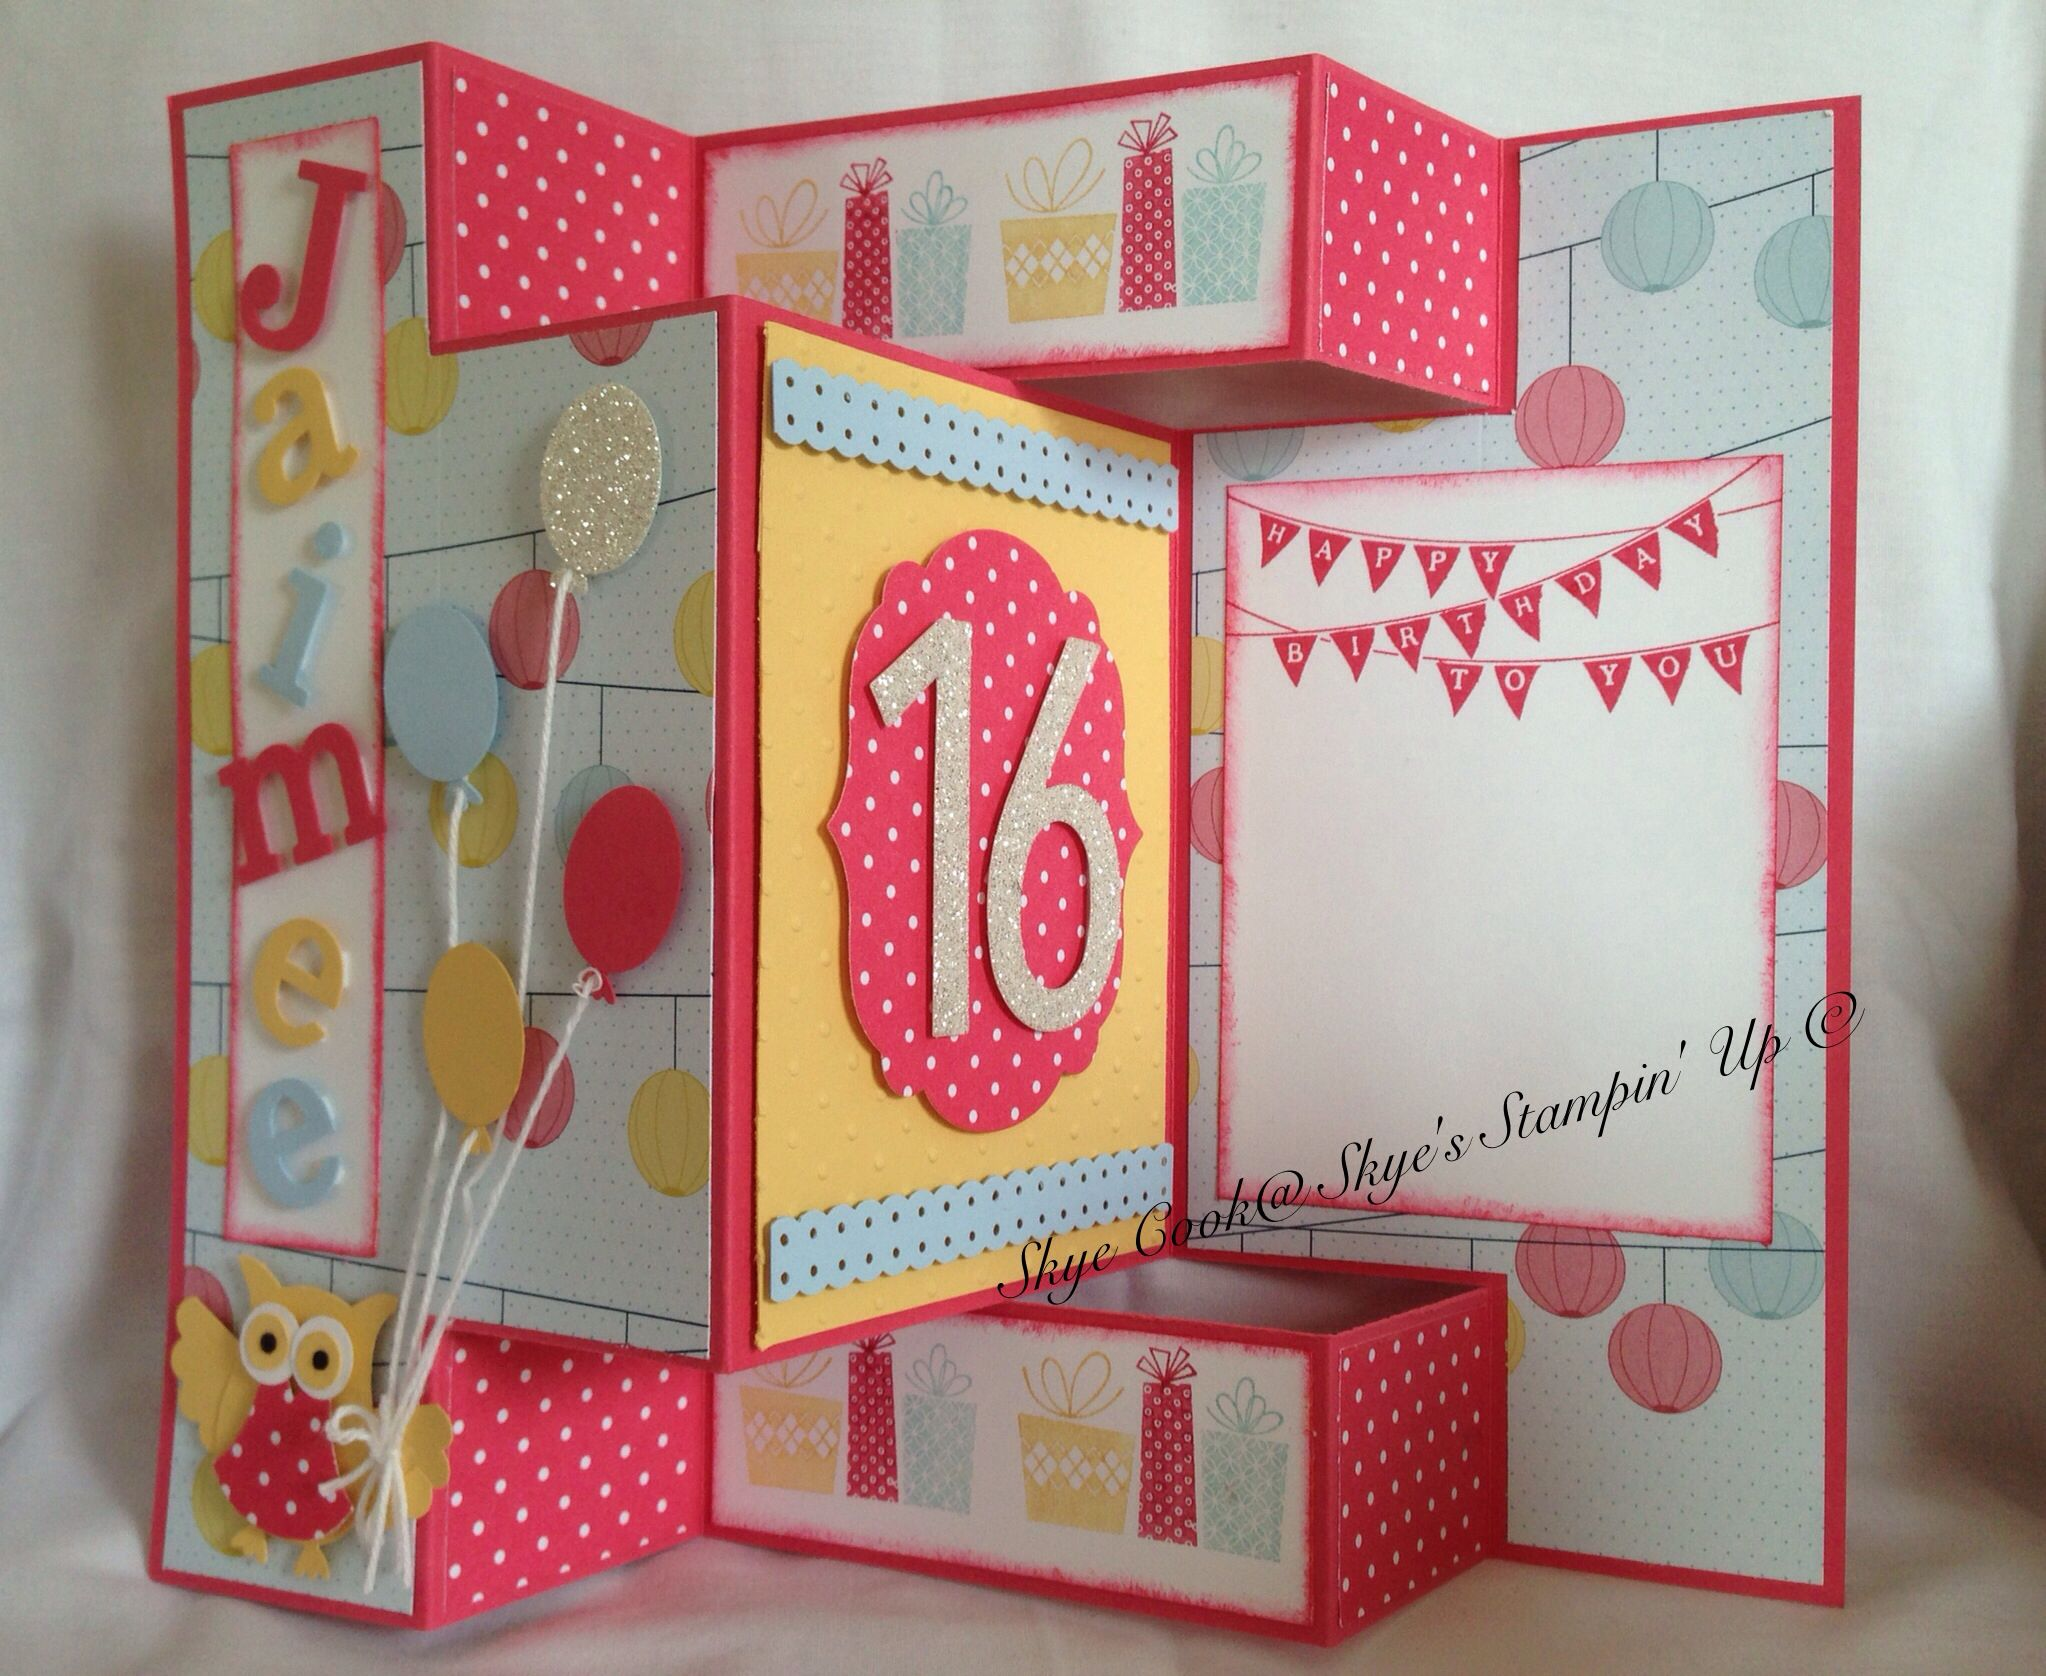 Personalised birthday card for a sweet 16 yr old girl To see